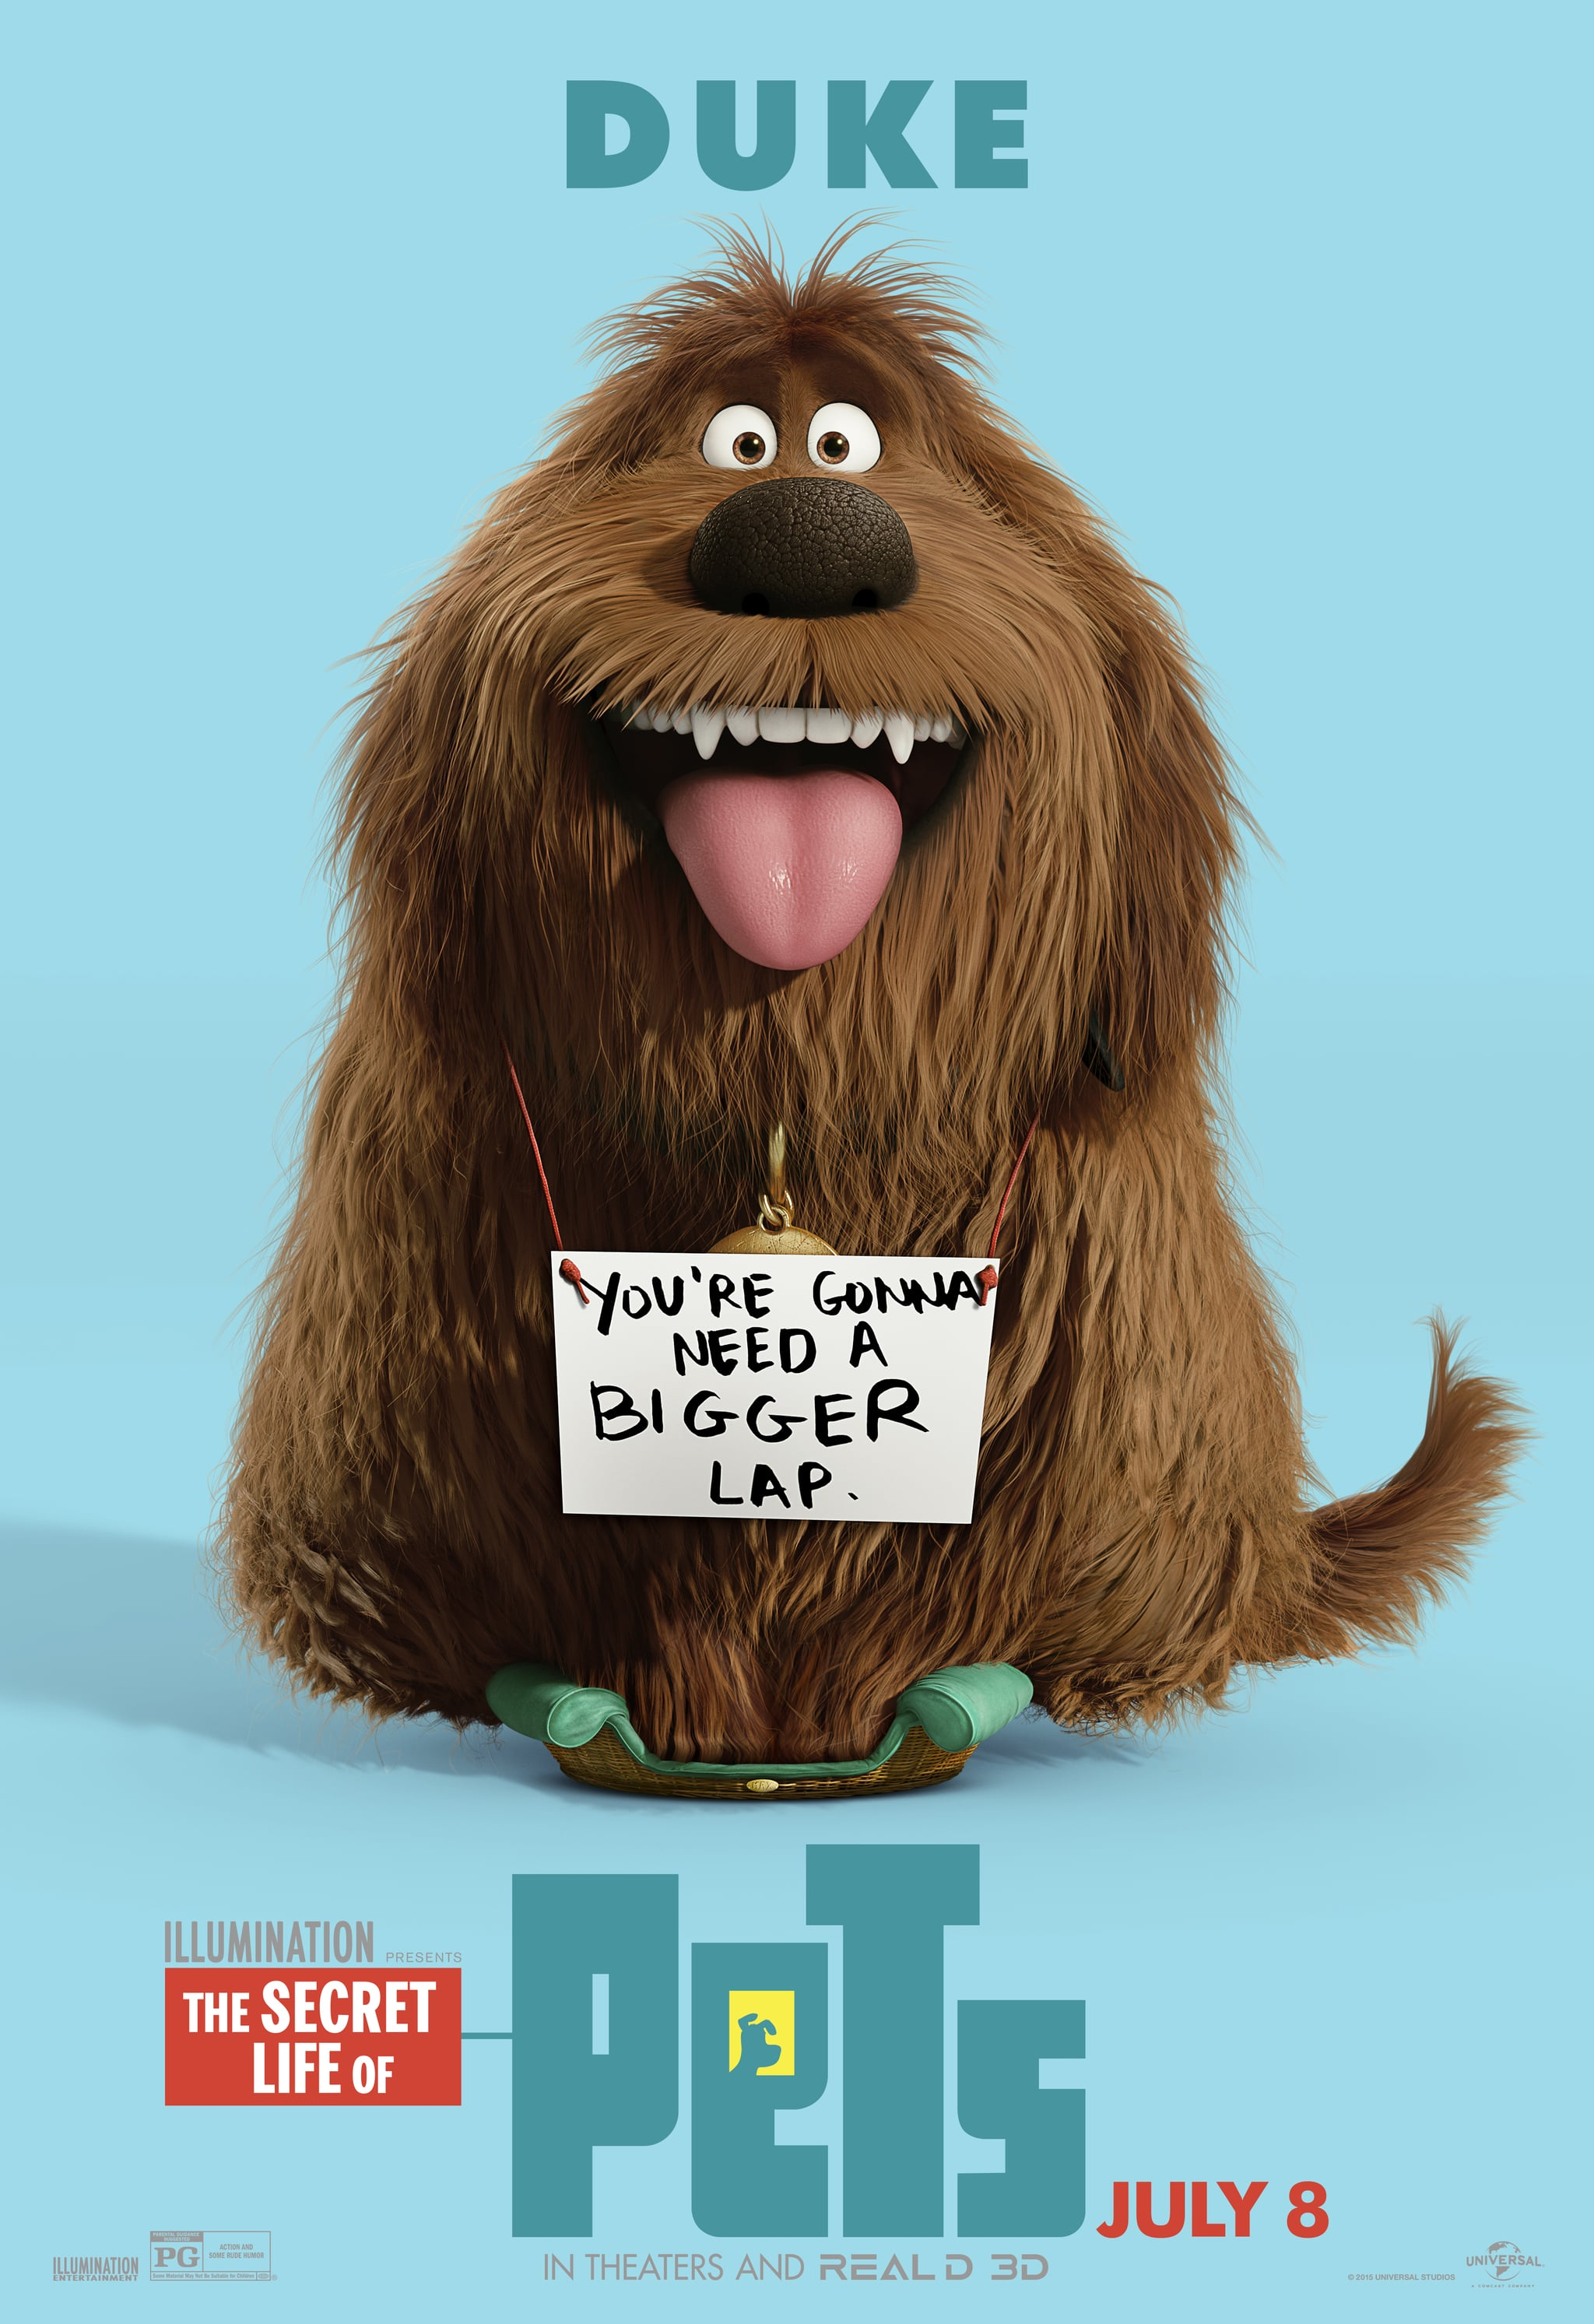 Dogs Cats And Other Pets The Secret Life Of Pets Character Posters Are Here And They Re Cuter Than The Trailer Popsugar Pets Photo 4